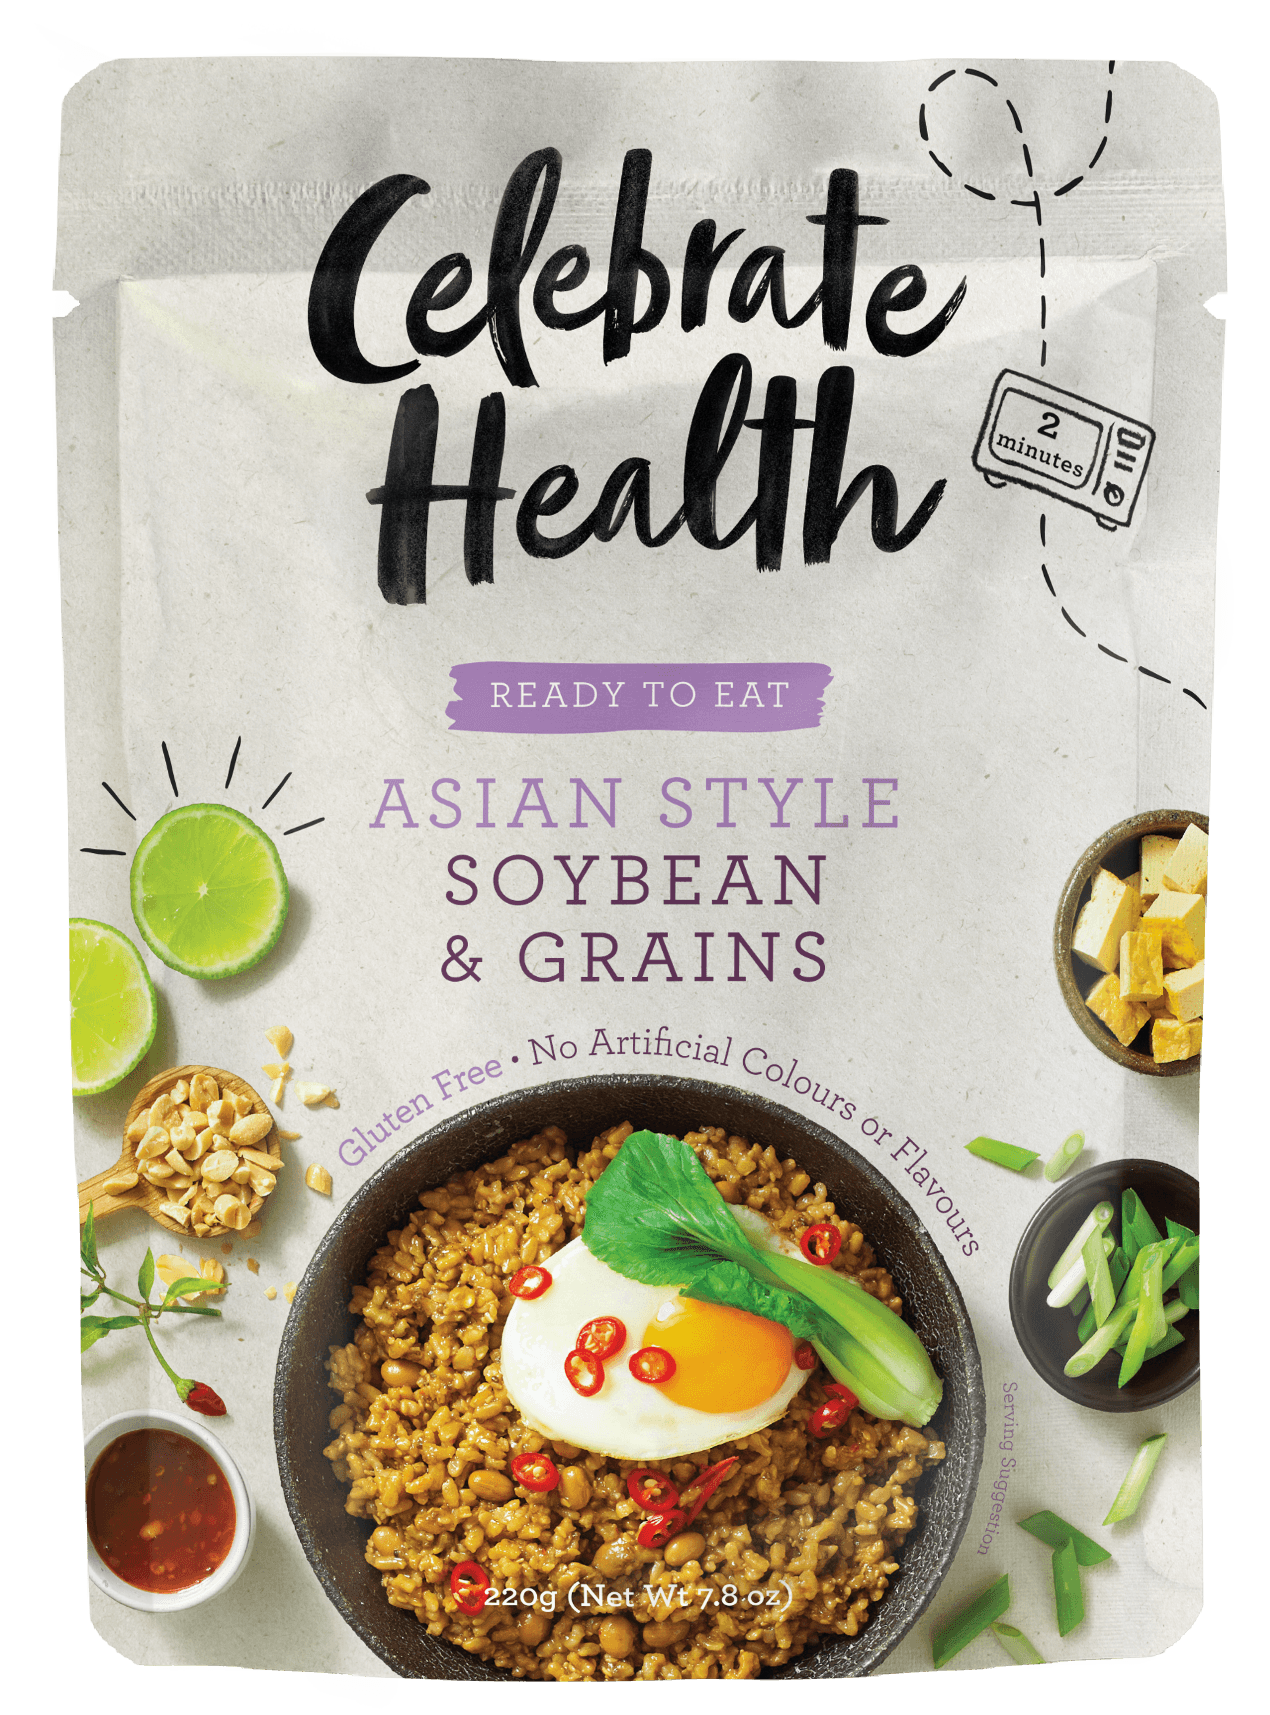 Celebrate Health Ready to Eat Asian Style Soybean & Grains Image